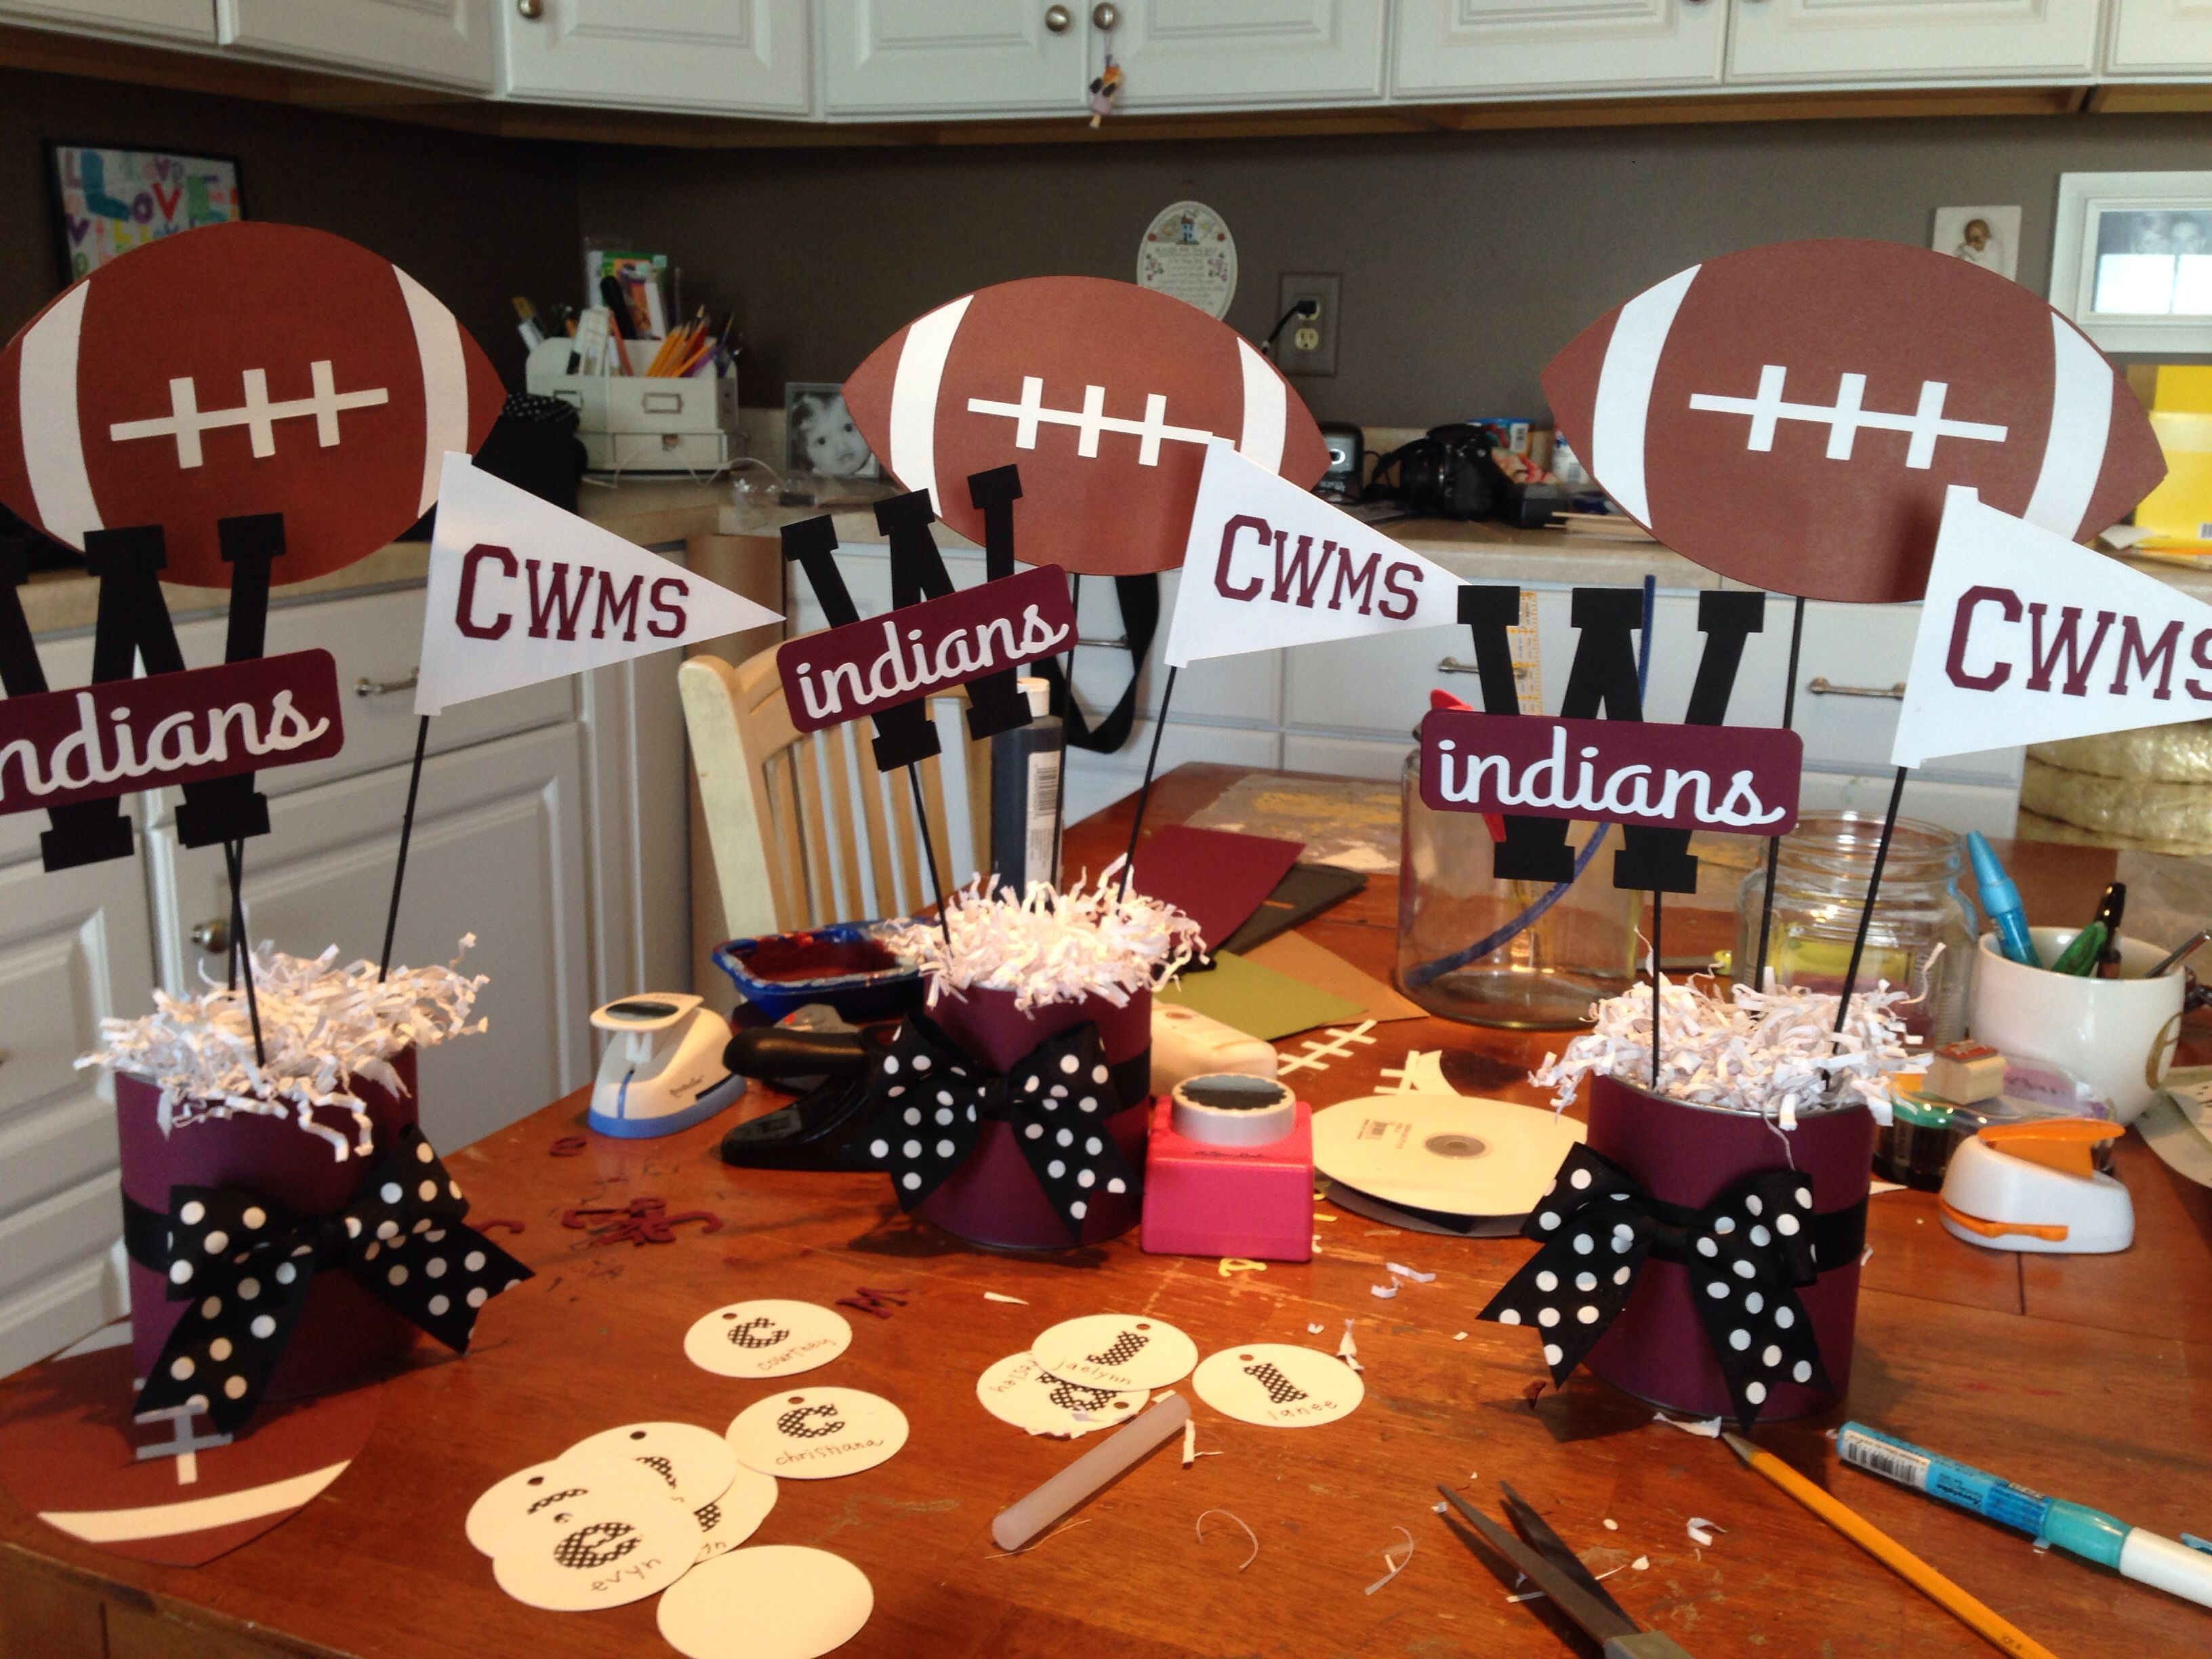 Sports Banquet Centerpiece Supplies : Football basketball cheer cheerleading decorations